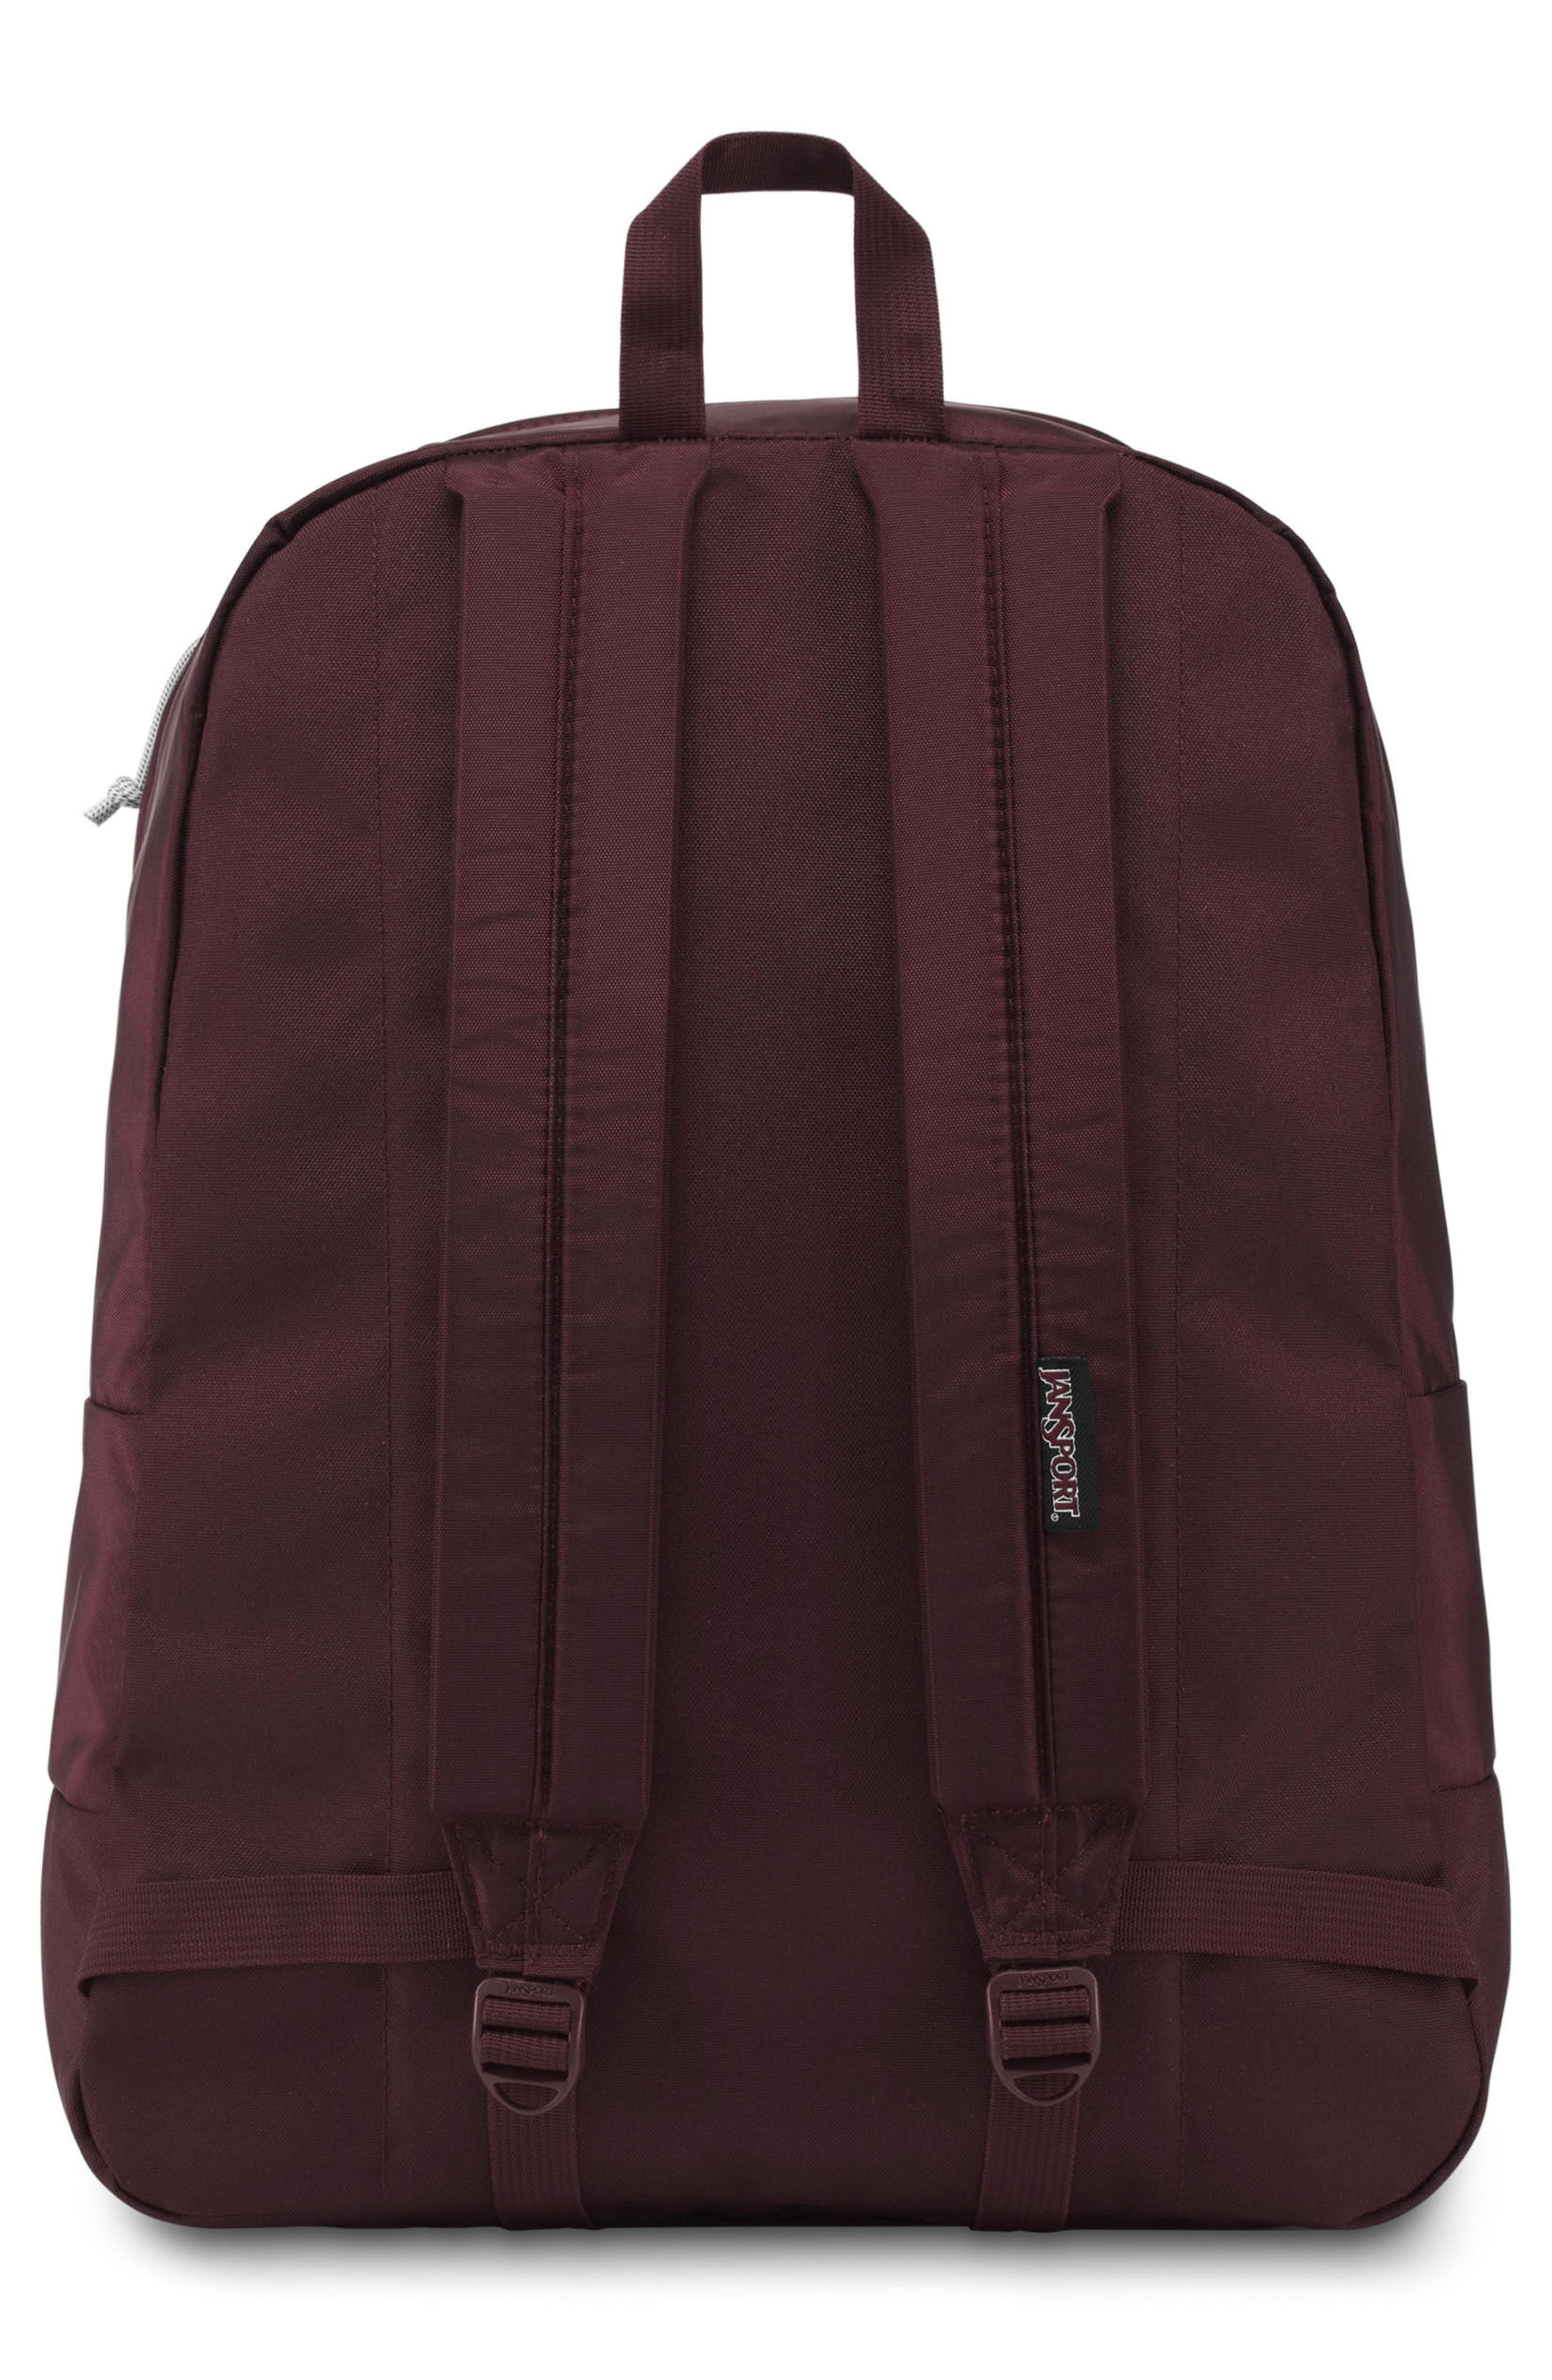 Black Label Superbreak Backpack,                             Alternate thumbnail 2, color,                             DRIED FIG